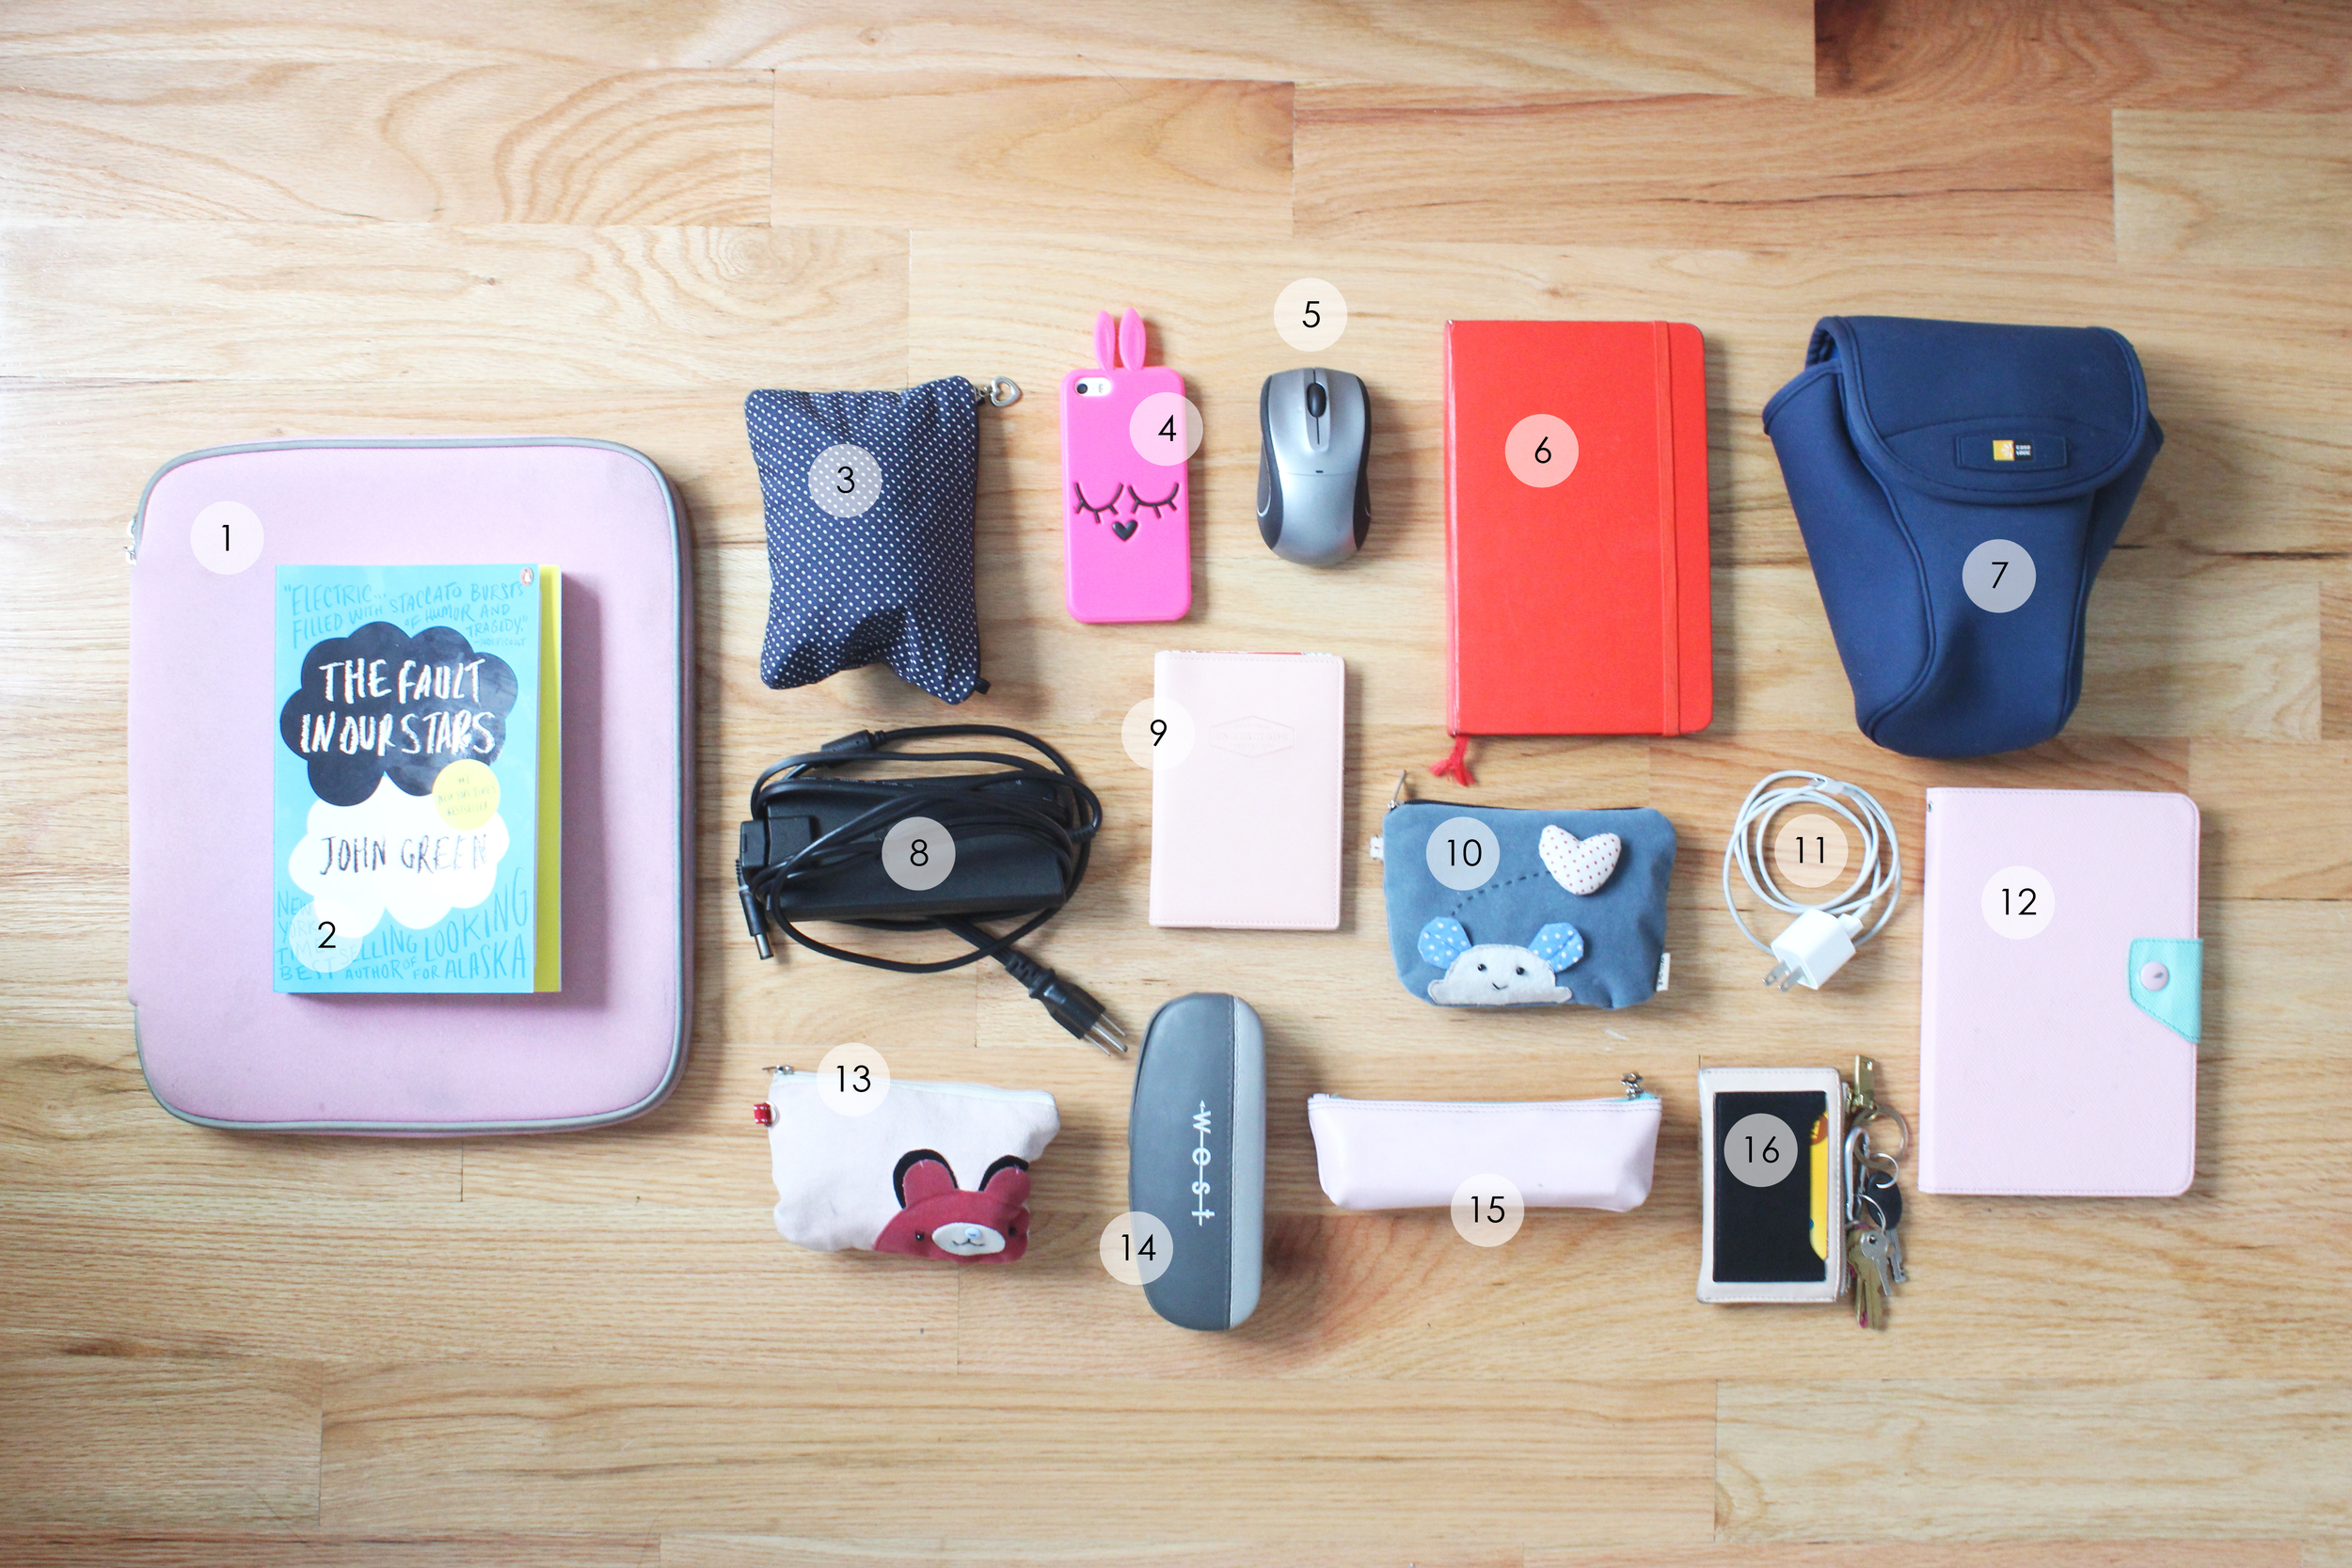 Contents of my carry-on tote: 1. Laptop + laptop sleeve 2. Book for the trip 3. DSLR lens + battery + charger 4. iPhone 5. Wireless mouse 6. Moleskine notebook 7. DSLR + DSLR sleeve 8. Laptop charger 9. Passport + passport holder 10. External hard drive + bag. 11. iPhone charger 12. iPad mini 13. Mini toiletries bag with essentials 14. Sunglasses + sunglasses case 15. Pencil case 16. Wallet + keys